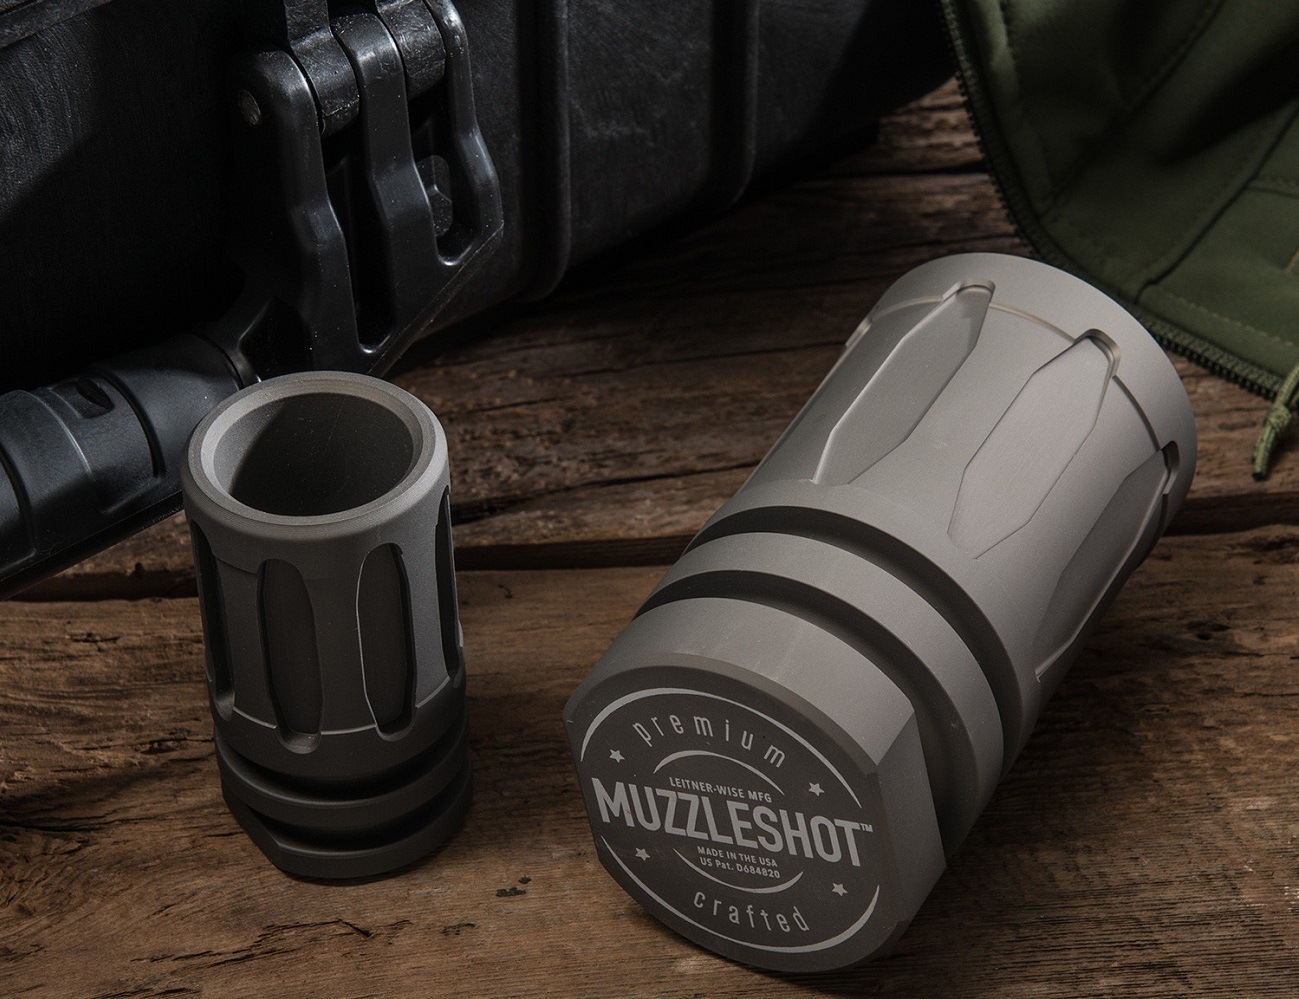 MuzzleShot – Shot Glass Styled After the Flash Hider